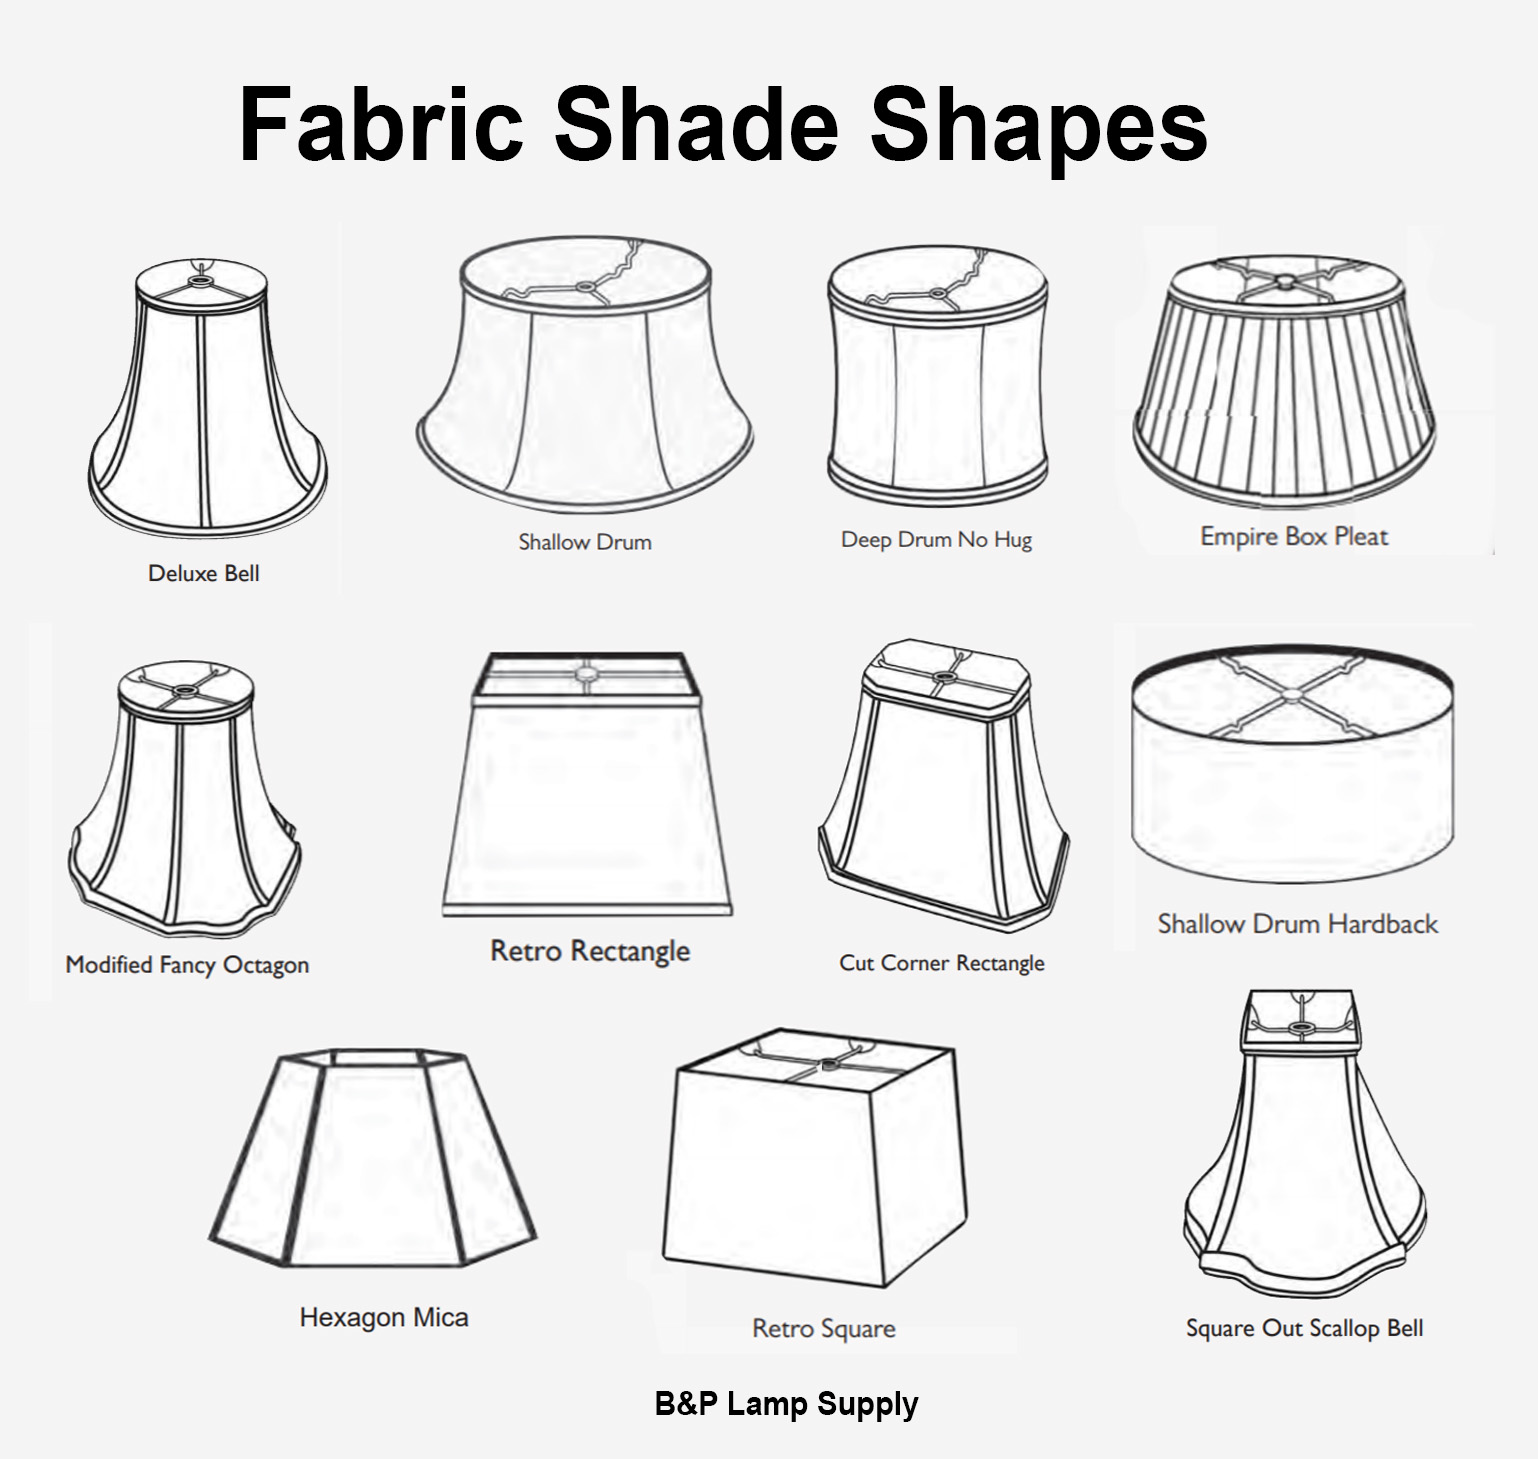 5 Simple Steps For Selecting The Correct Fabric Shade